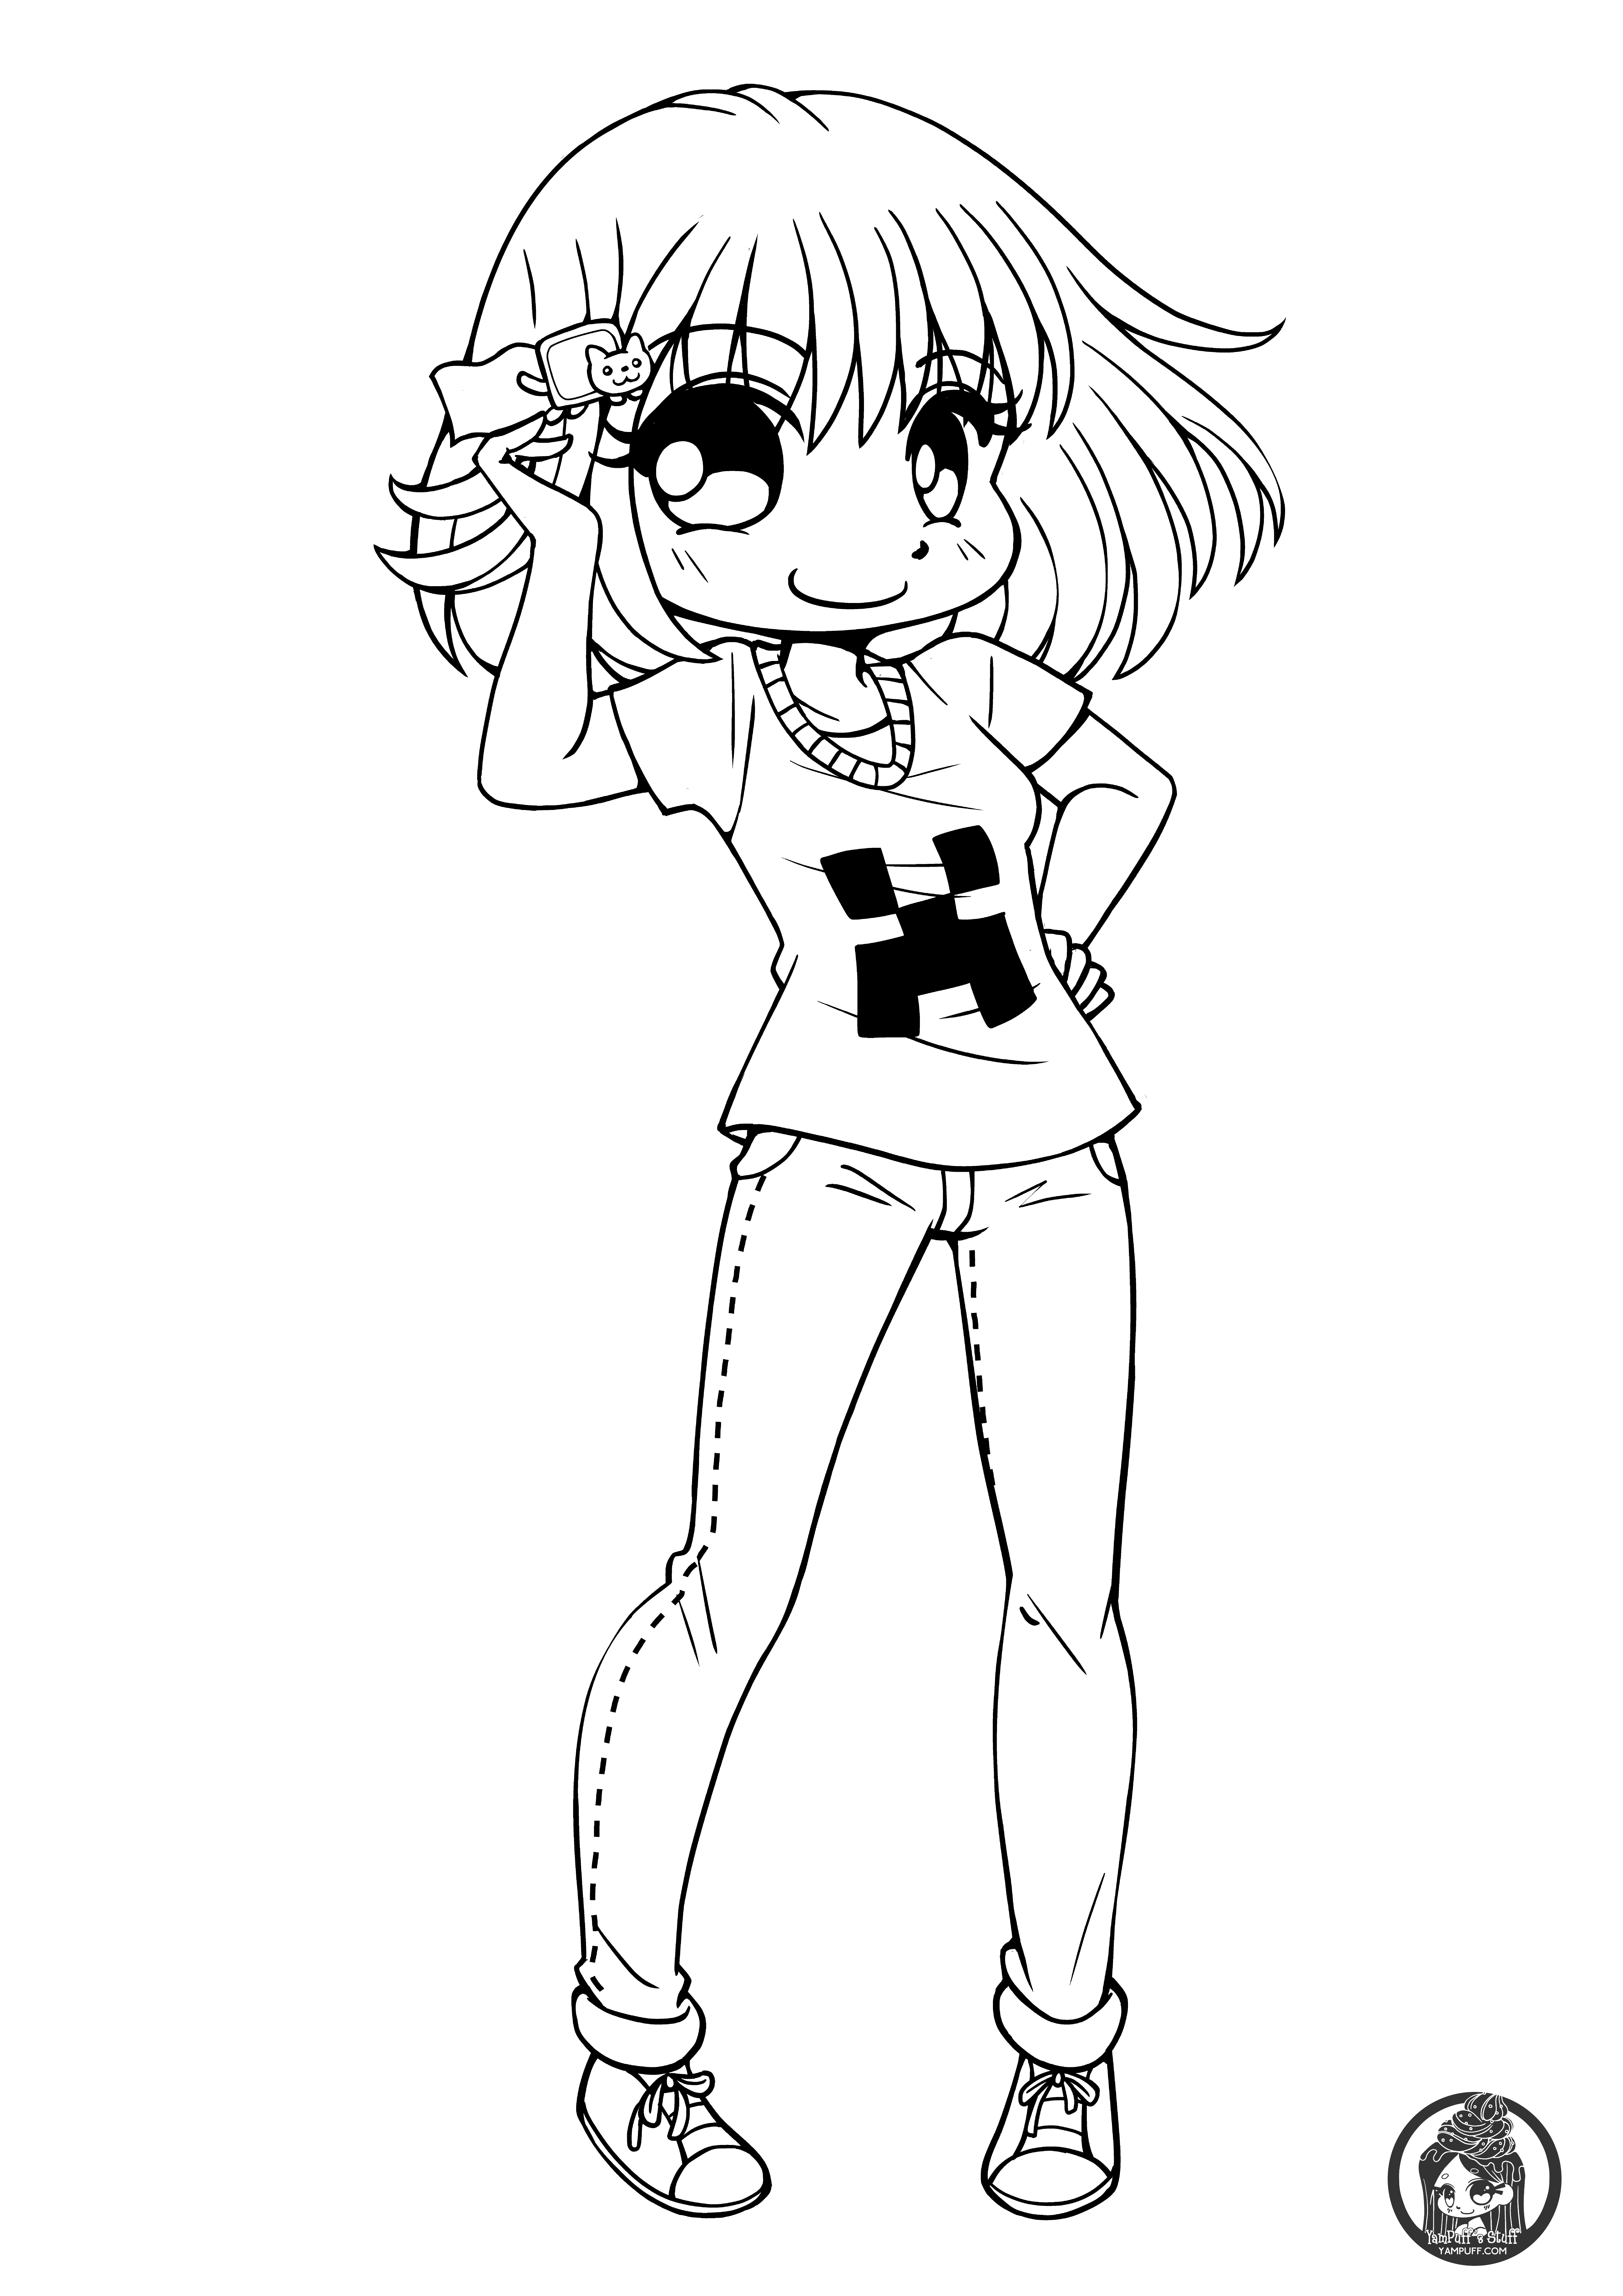 Chibis free chibi coloring pages yampuff 39 s stuff for Cute anime coloring pages to print